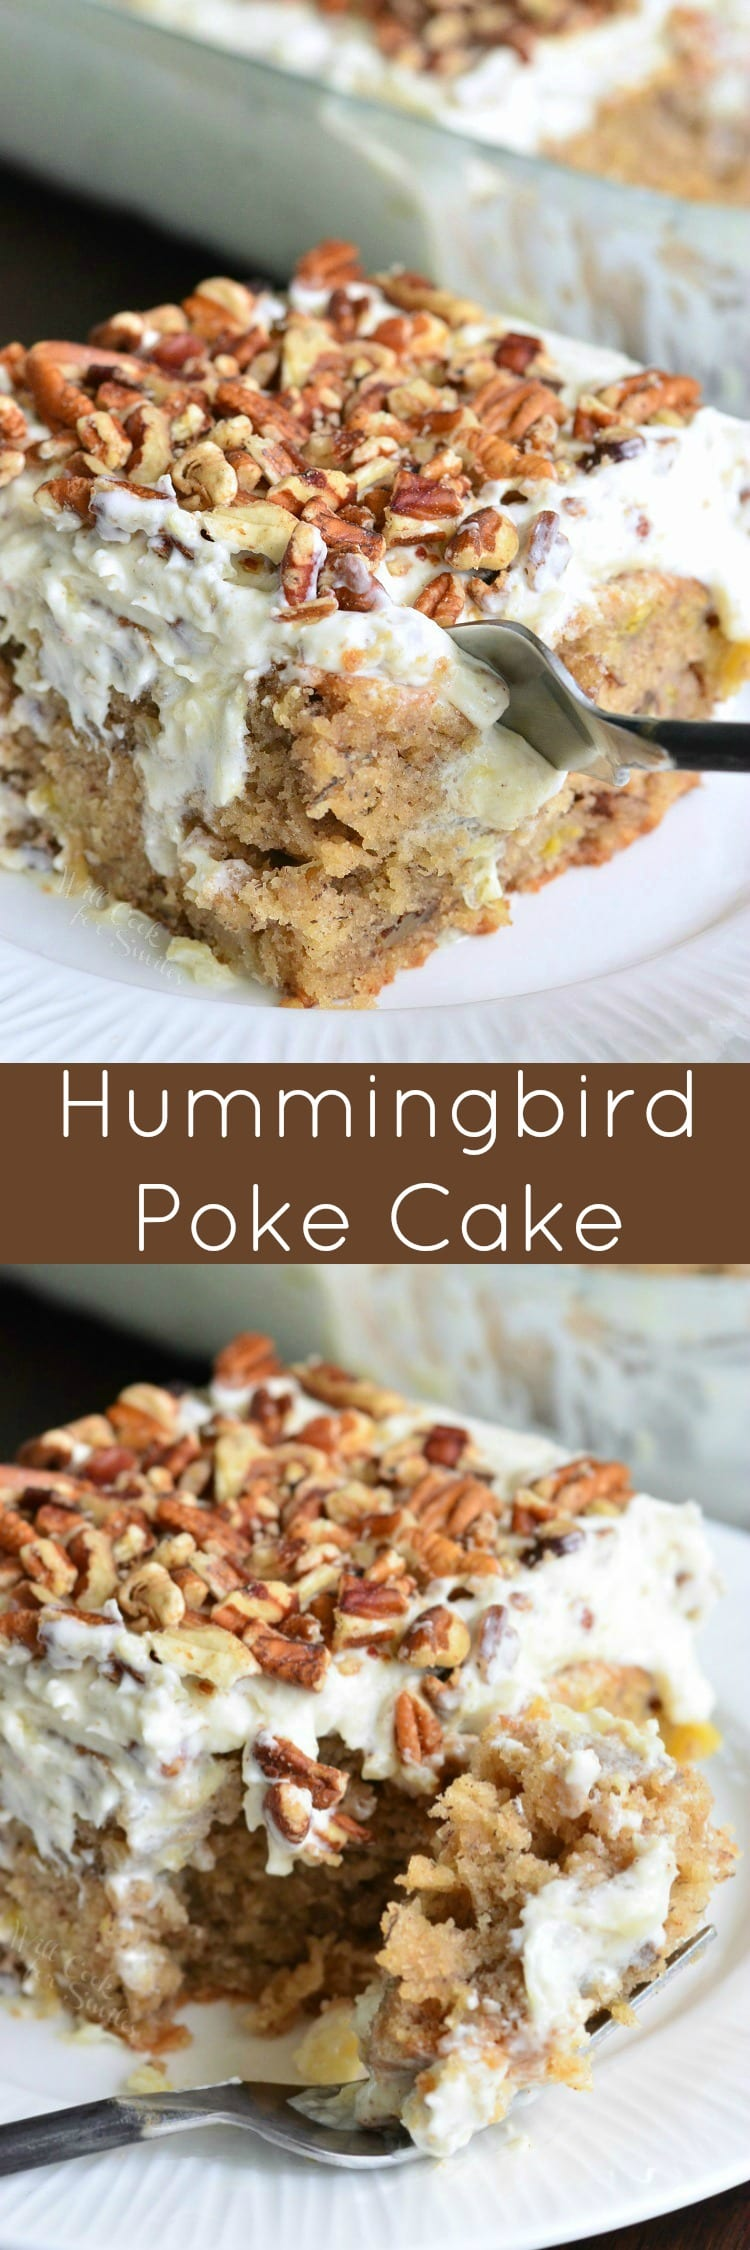 Hummingbird Poke Cake. This version of a Hummingbird cake is so easy and extra moist from a layer of sweet, creamy sauce. #hummingbirdcake #pokecake #bananacake #cake